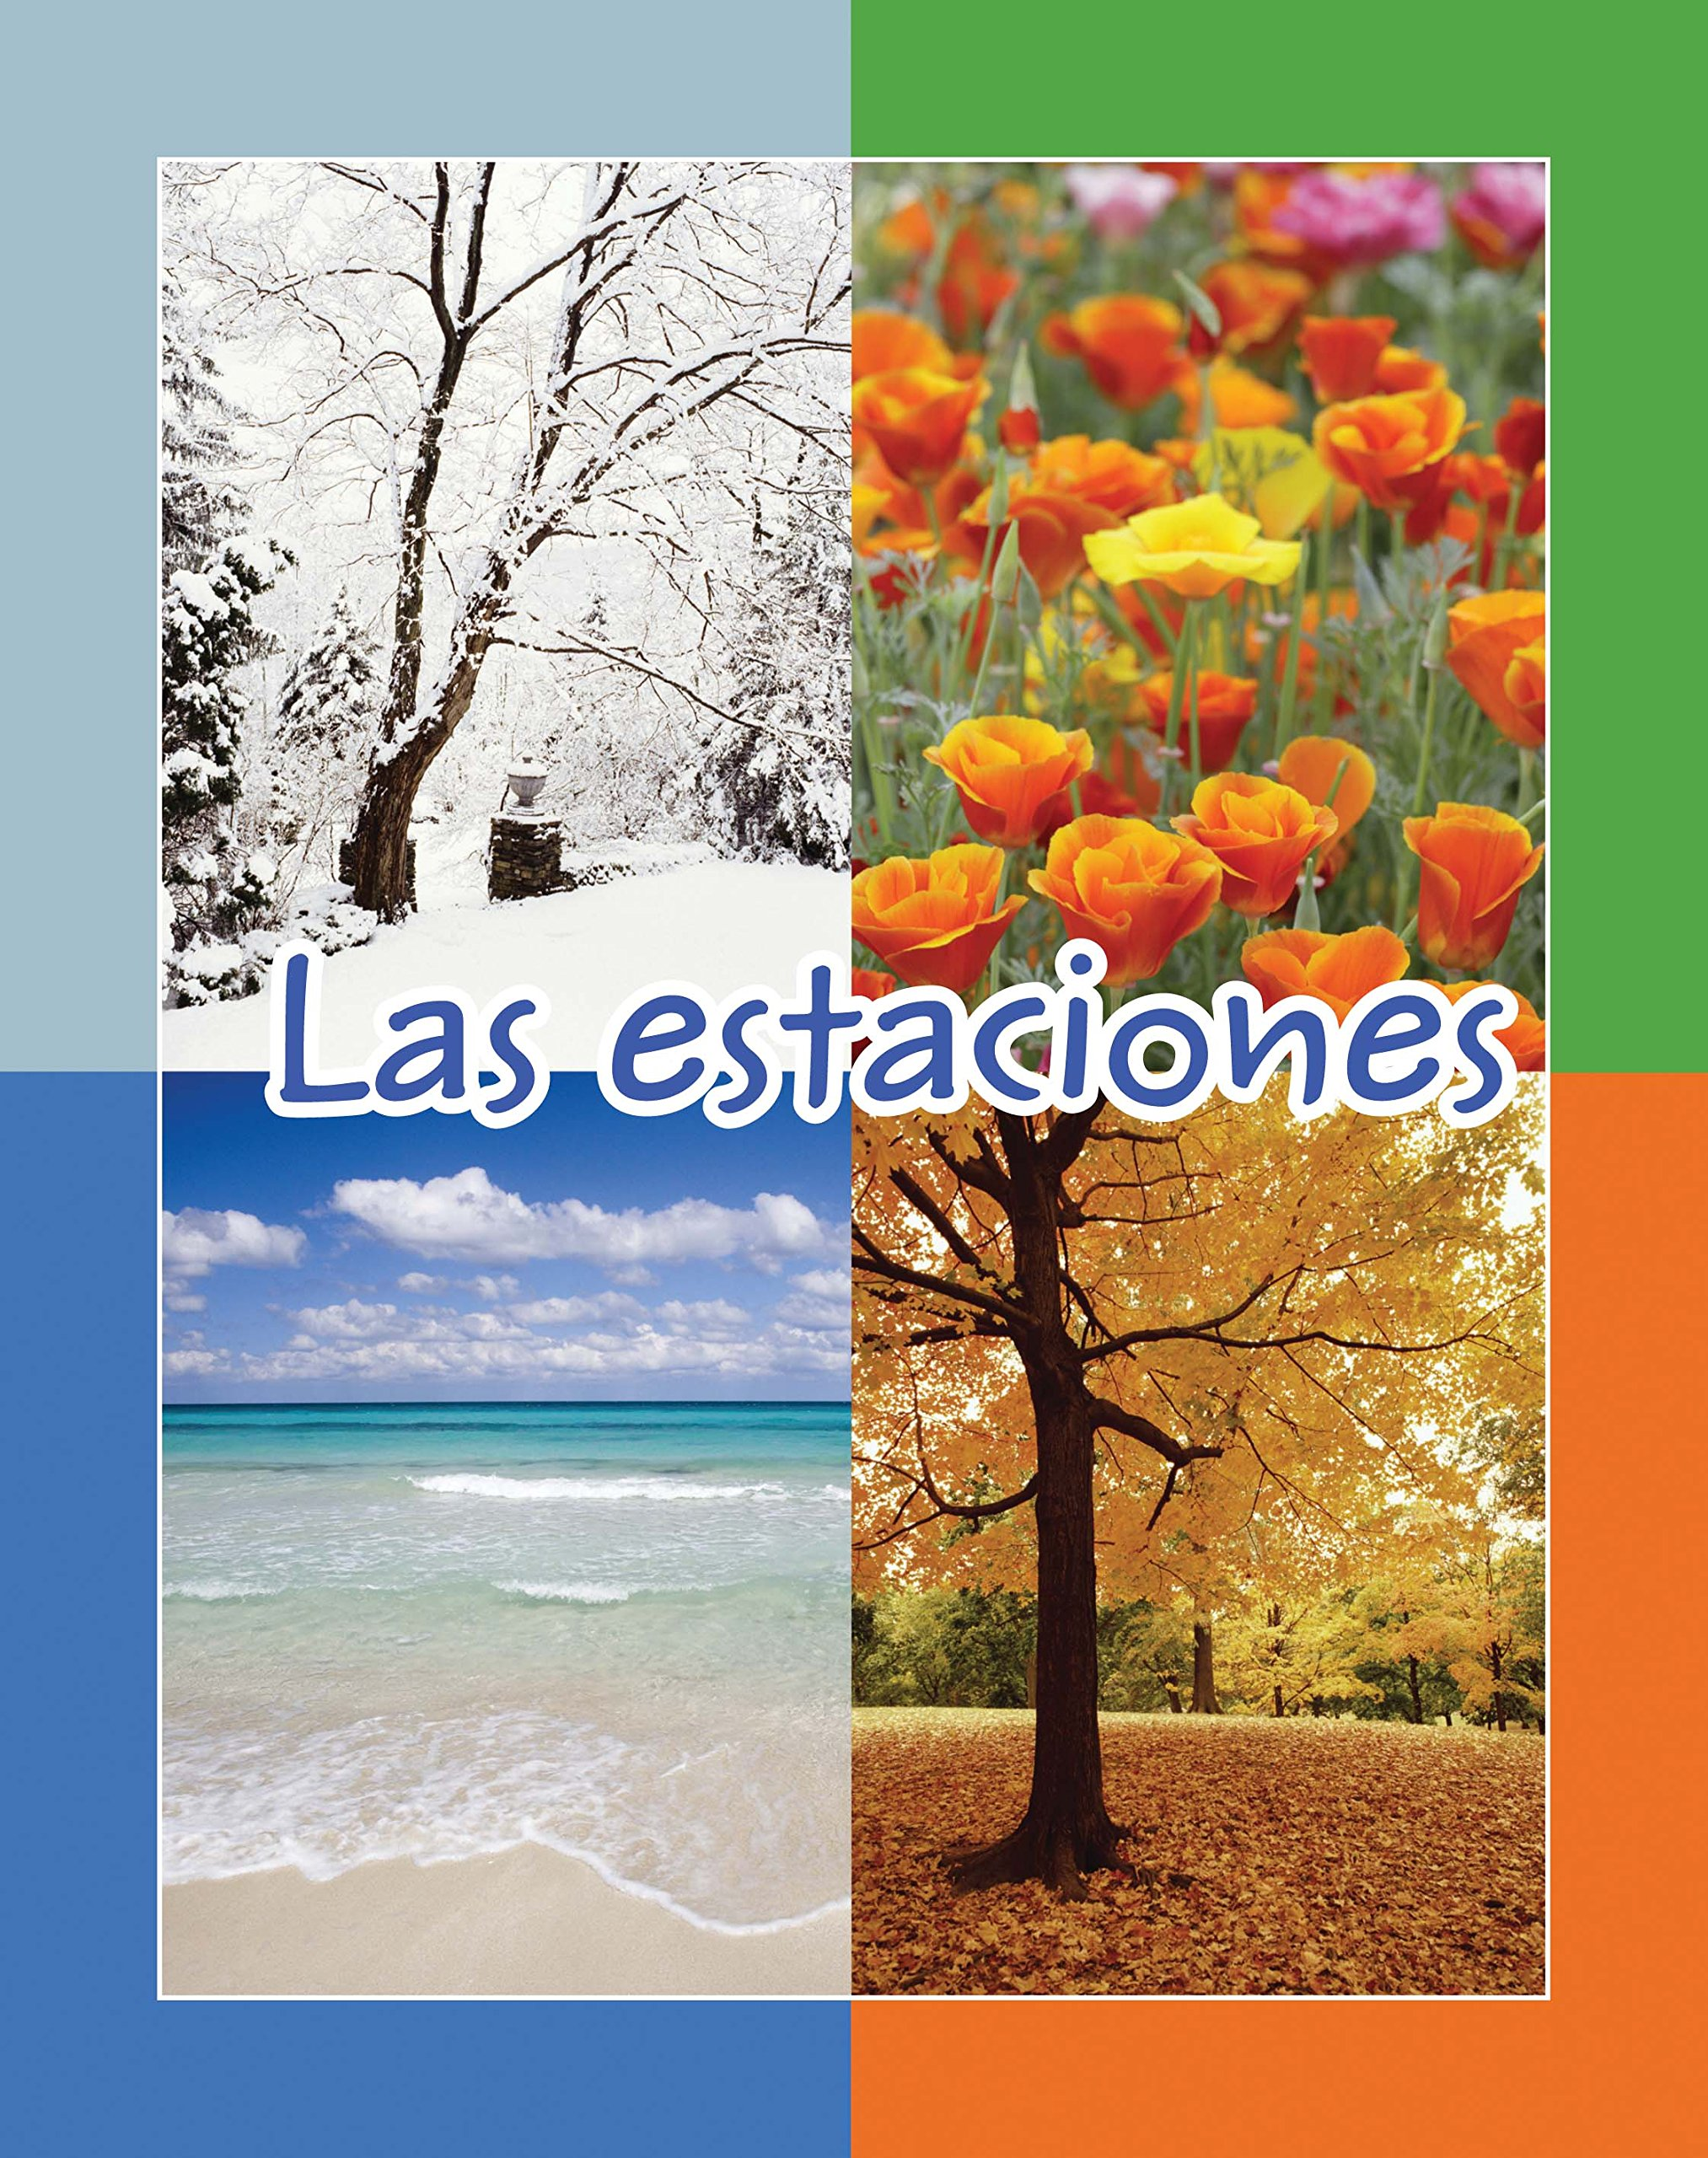 Las estaciones (Facil De Leer/ Easy Readers) (Spanish Edition) ebook